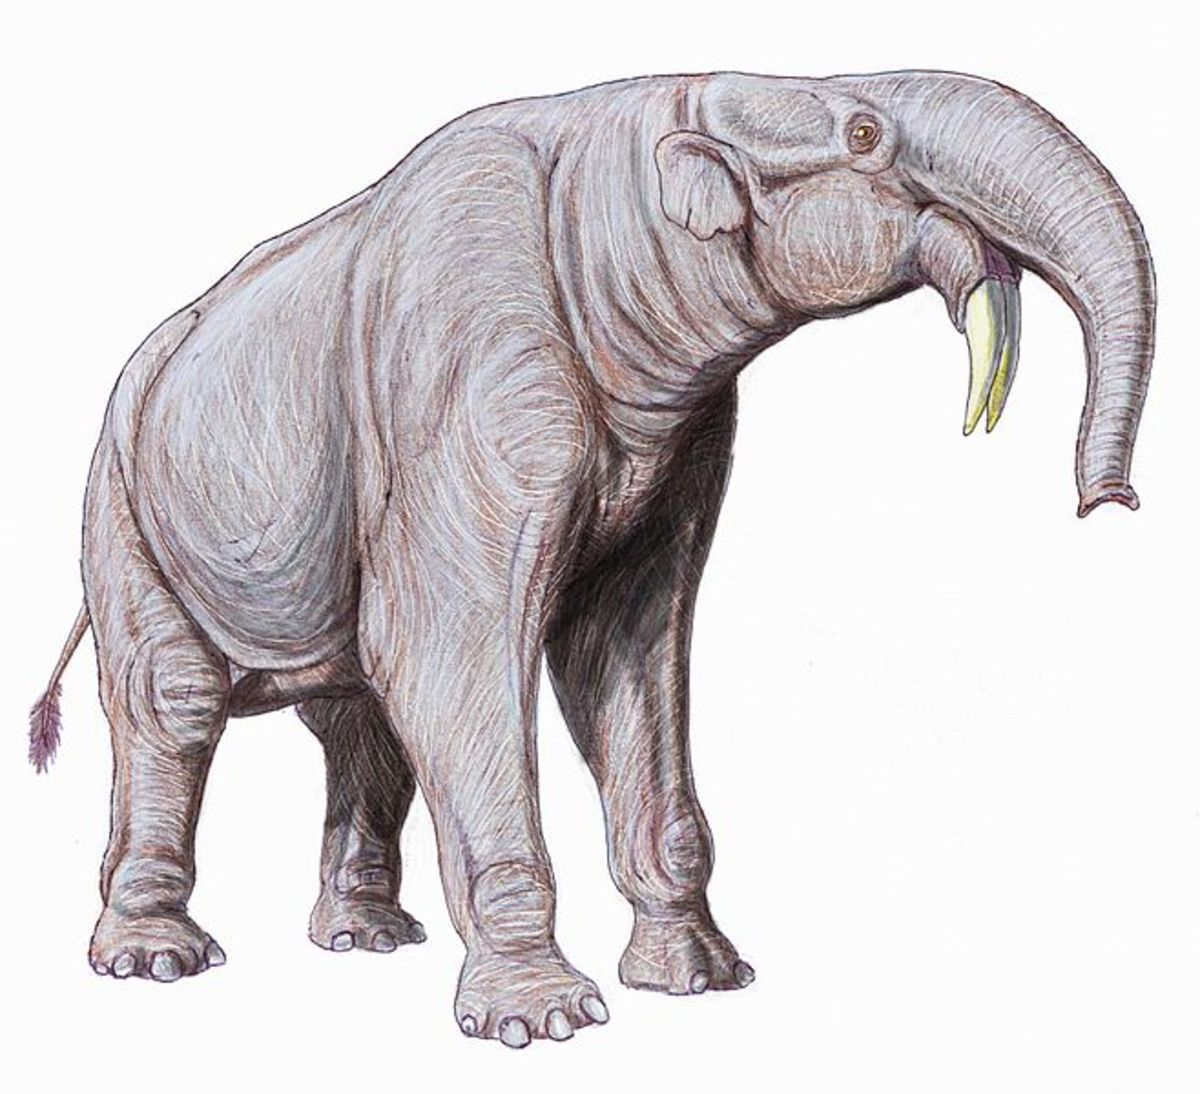 Deinotherium- one of the largest land mammals to ever walk the Earth.